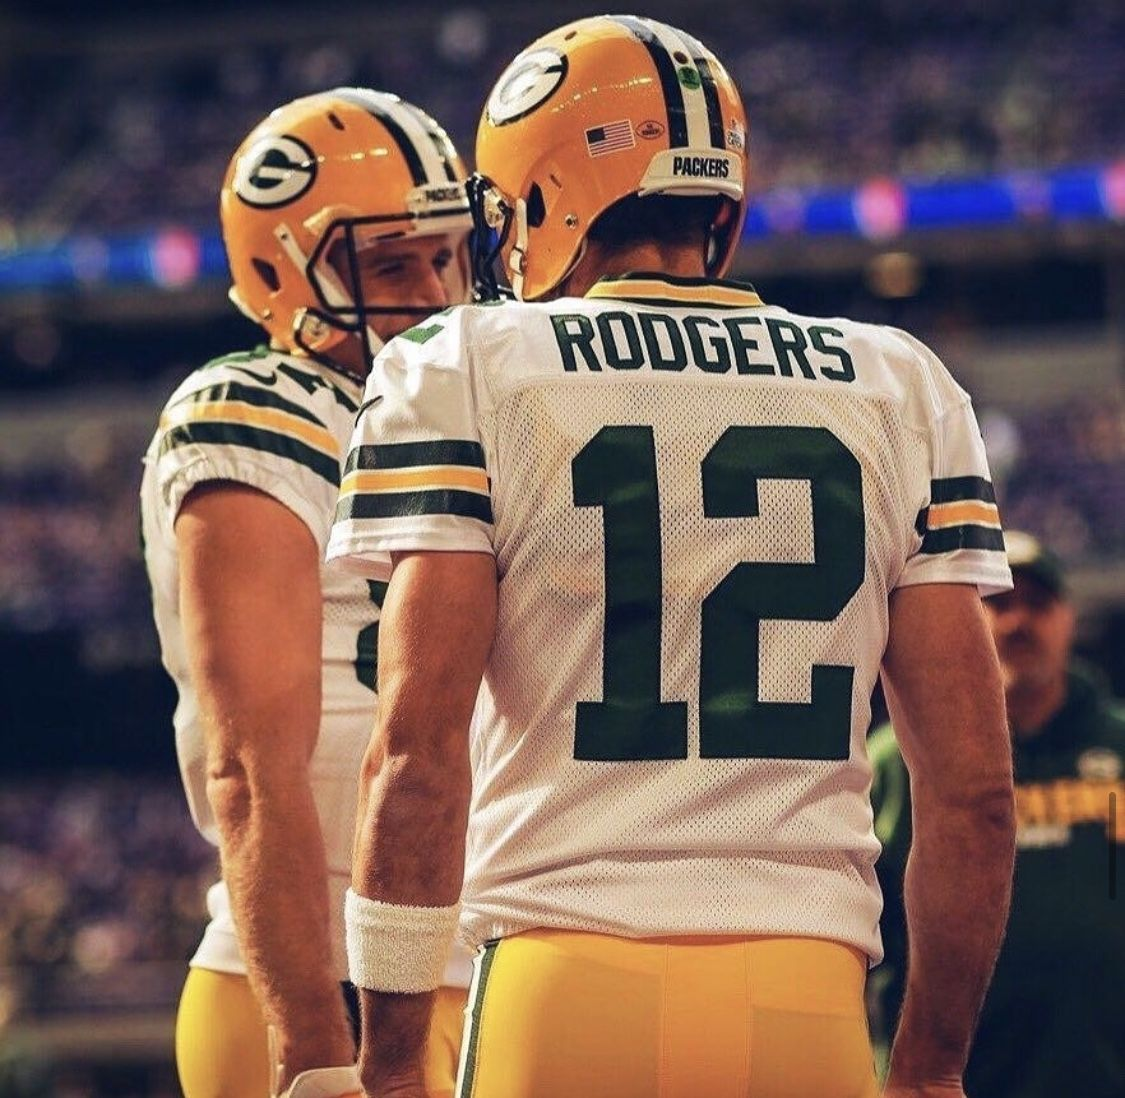 Pin By Zoe Sparks On Green Bay Packers Green Packers Jordy Nelson Green Bay Packers